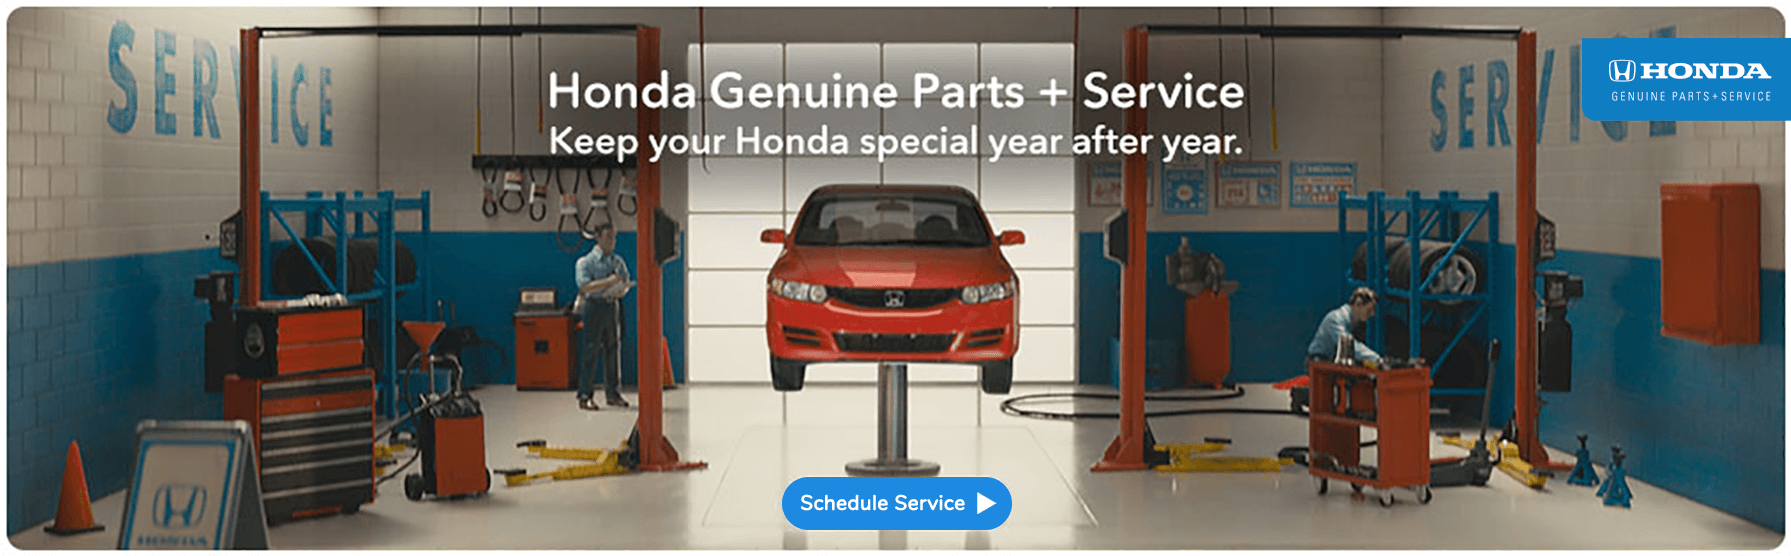 Genuine Honda Parts and Service Banner